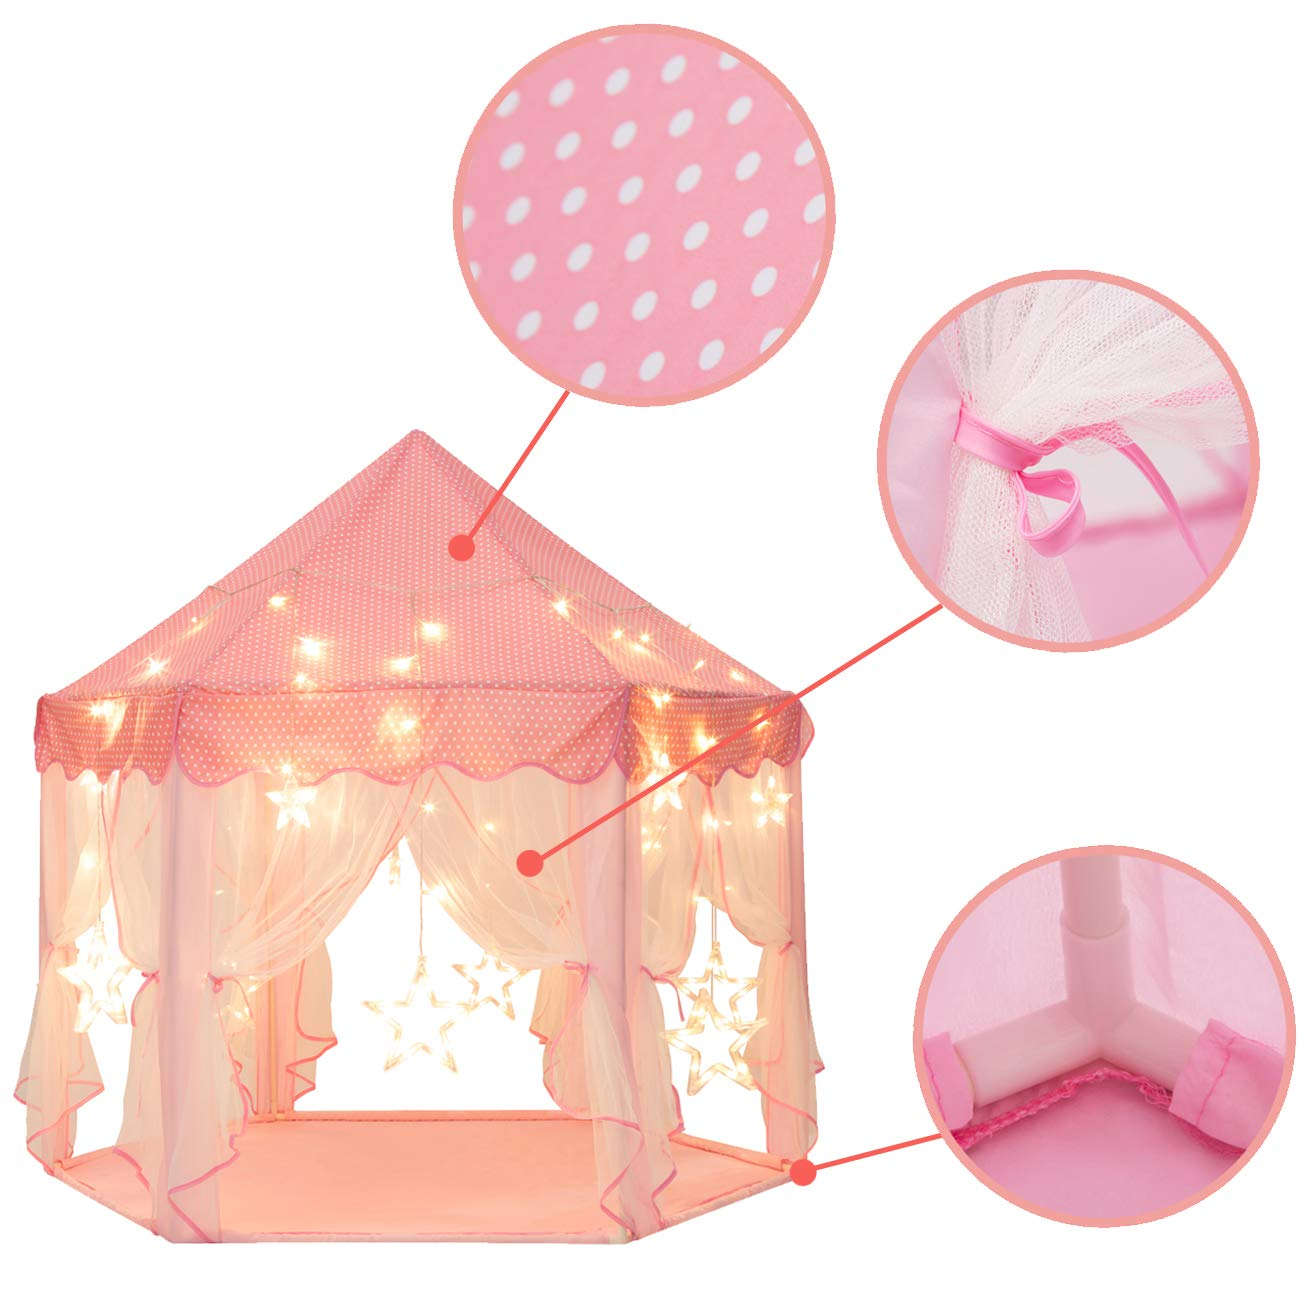 Sunnyglade 55'' x 53'' Princess Tent with 8.2 Feet Big and Large Star Lights Girls Large Playhouse Kids Castle Play Tent for Children Indoor and Outdoor Games by Sunnyglade (Image #3)